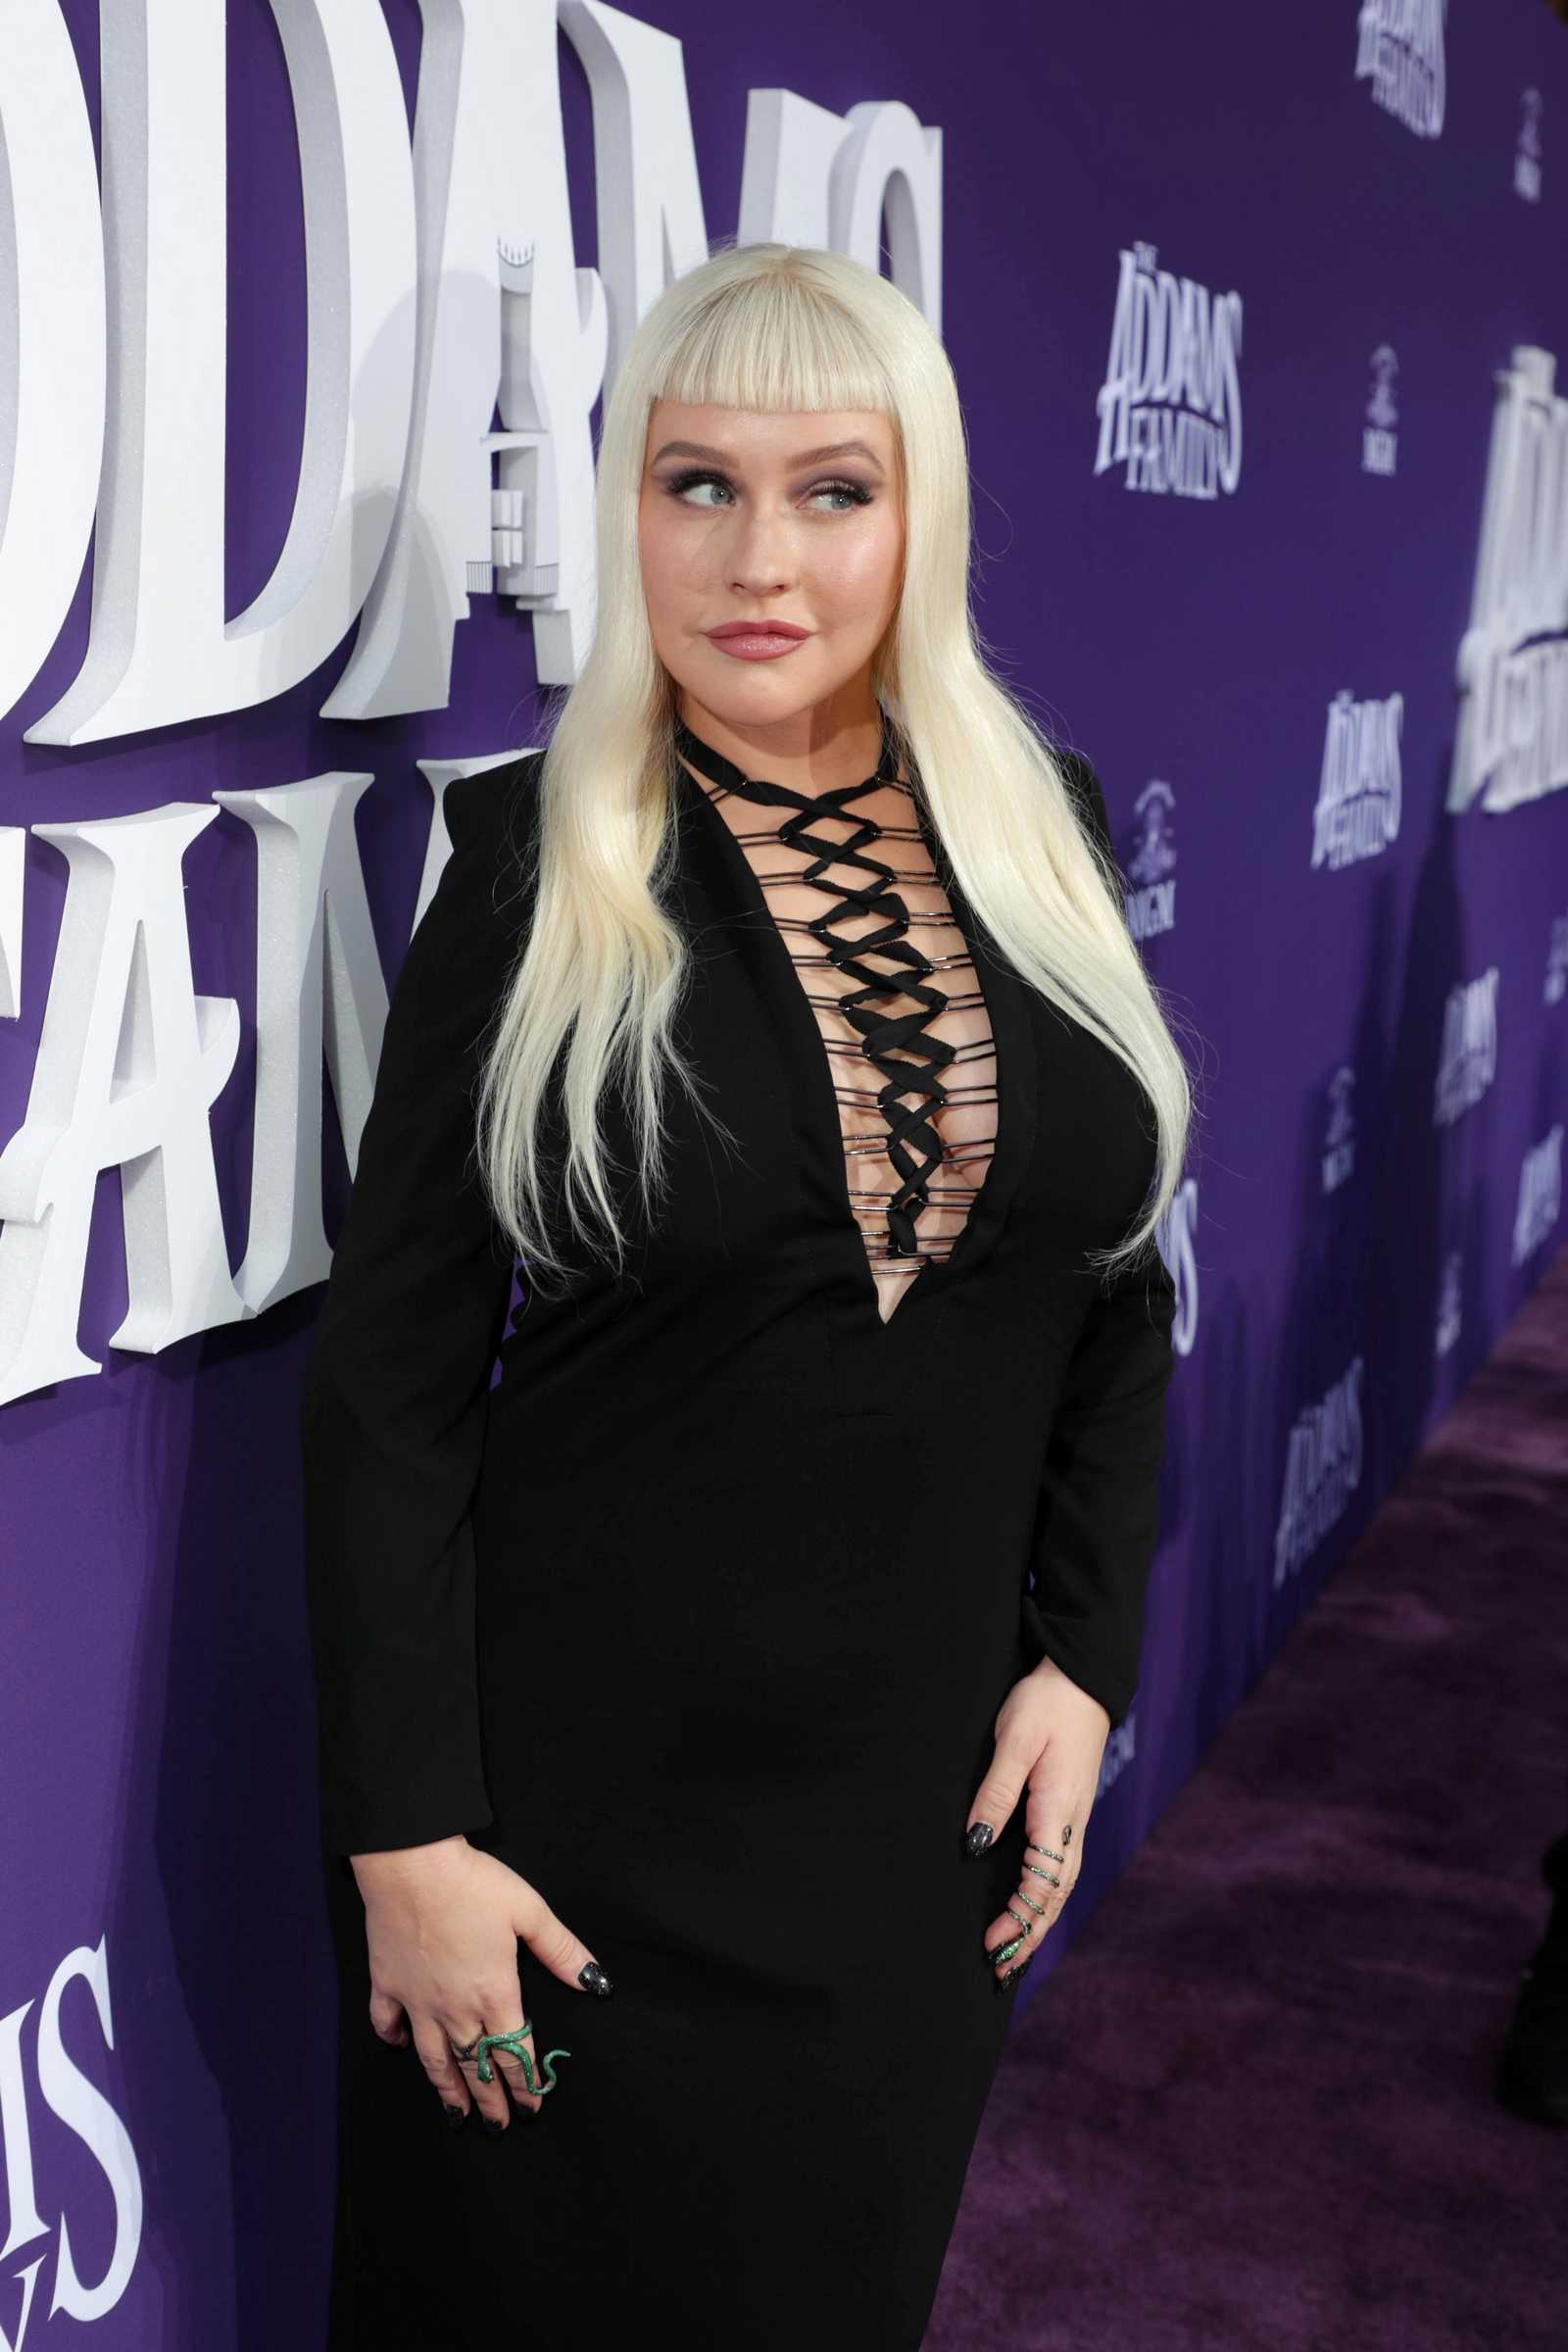 Christina_Aguilera_-_The_Addams_Family_Premiere__in_Los_Angeles_-_October_062C_2019-48.jpg